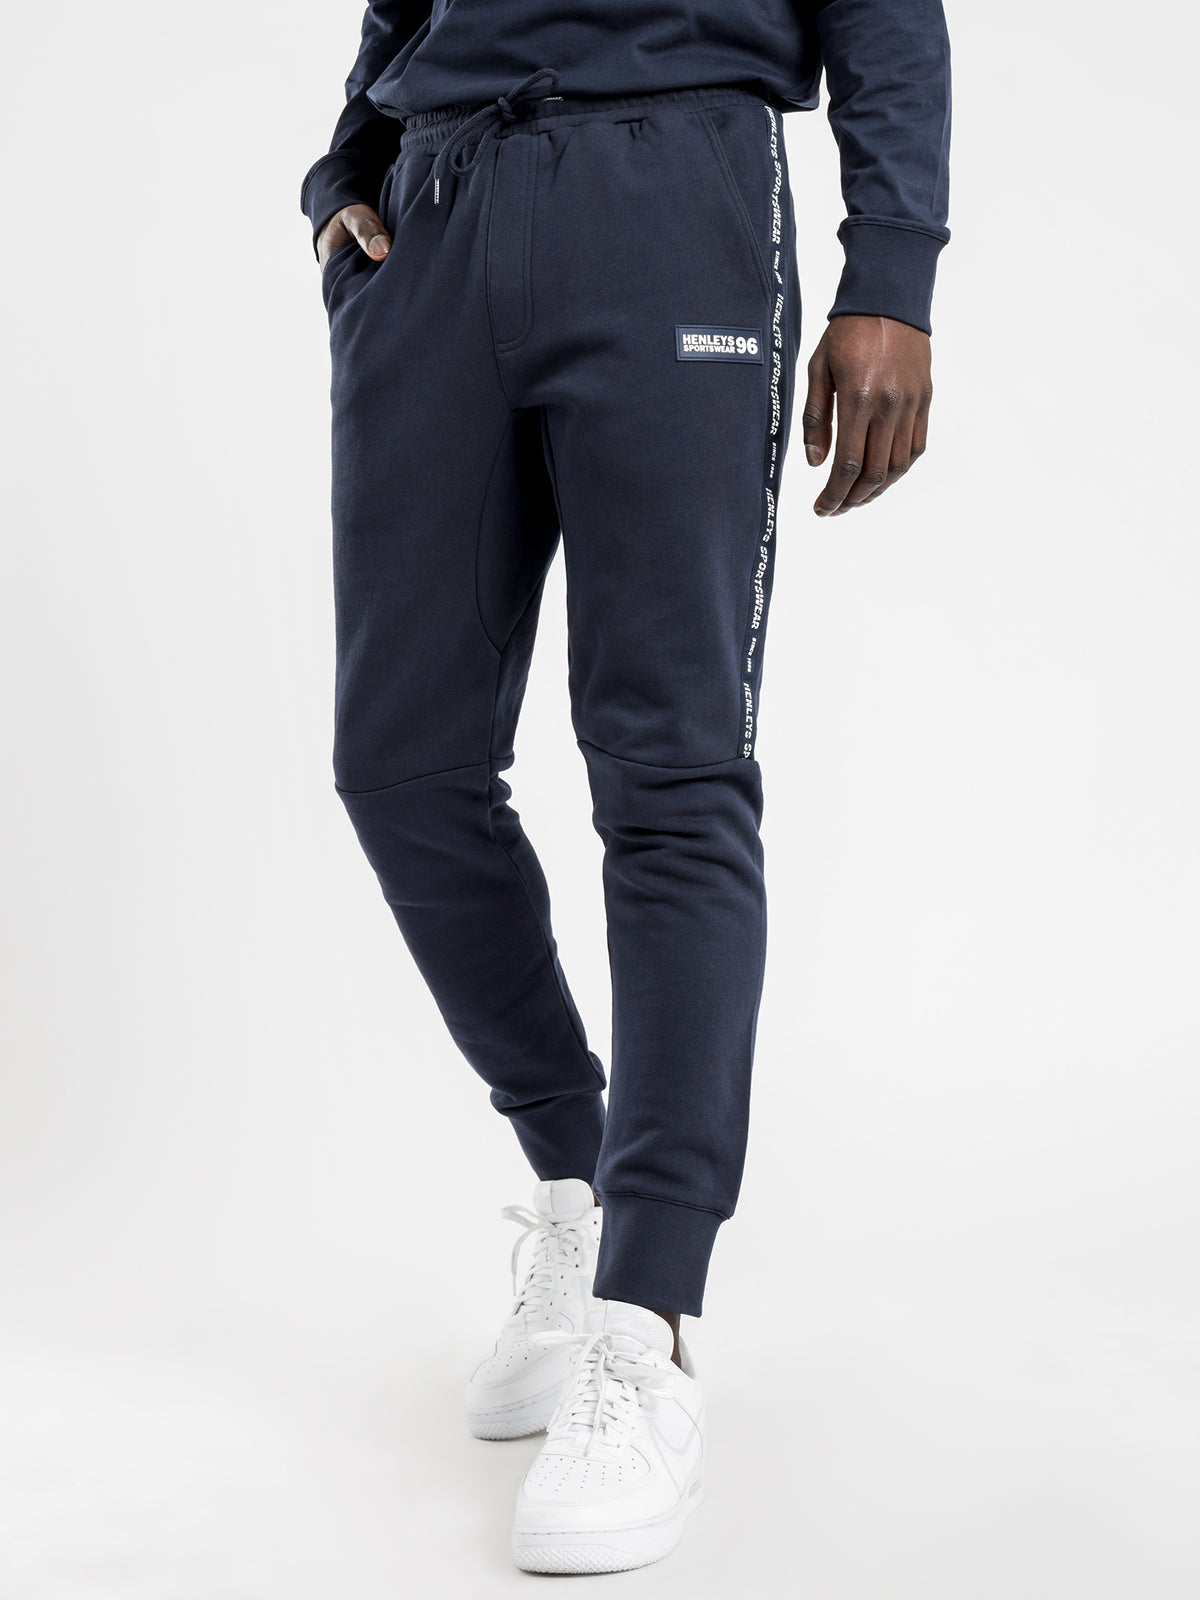 Atkins Track Pants in Navy